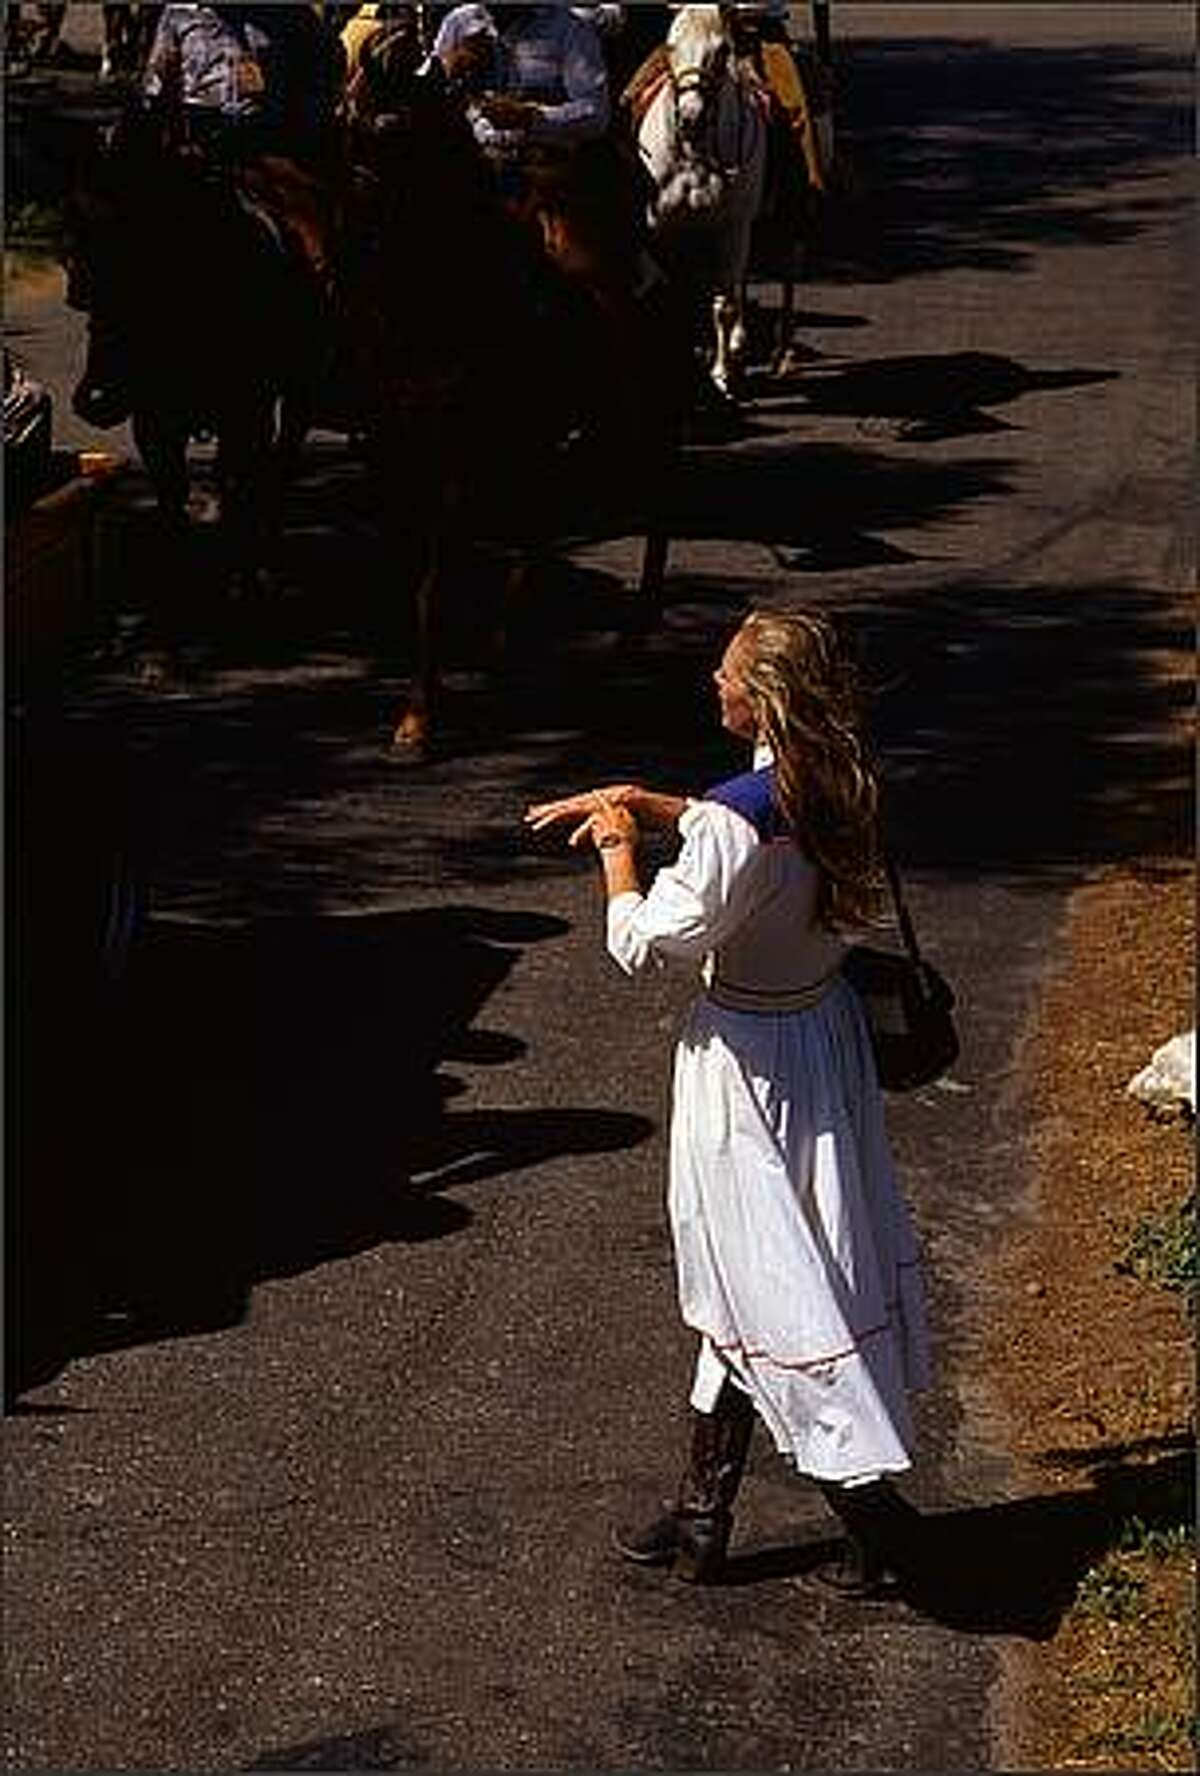 May 7, 1988, Solvang, California: As the mounted Rancheros enter the grounds of the Mission Santa Ines for the annual Blessing of the Horses, an unidentified woman calls out to them and with her middle finger extended rubs it on the back of her other hand in a circular motion. Photo by: Tomas / Polaris